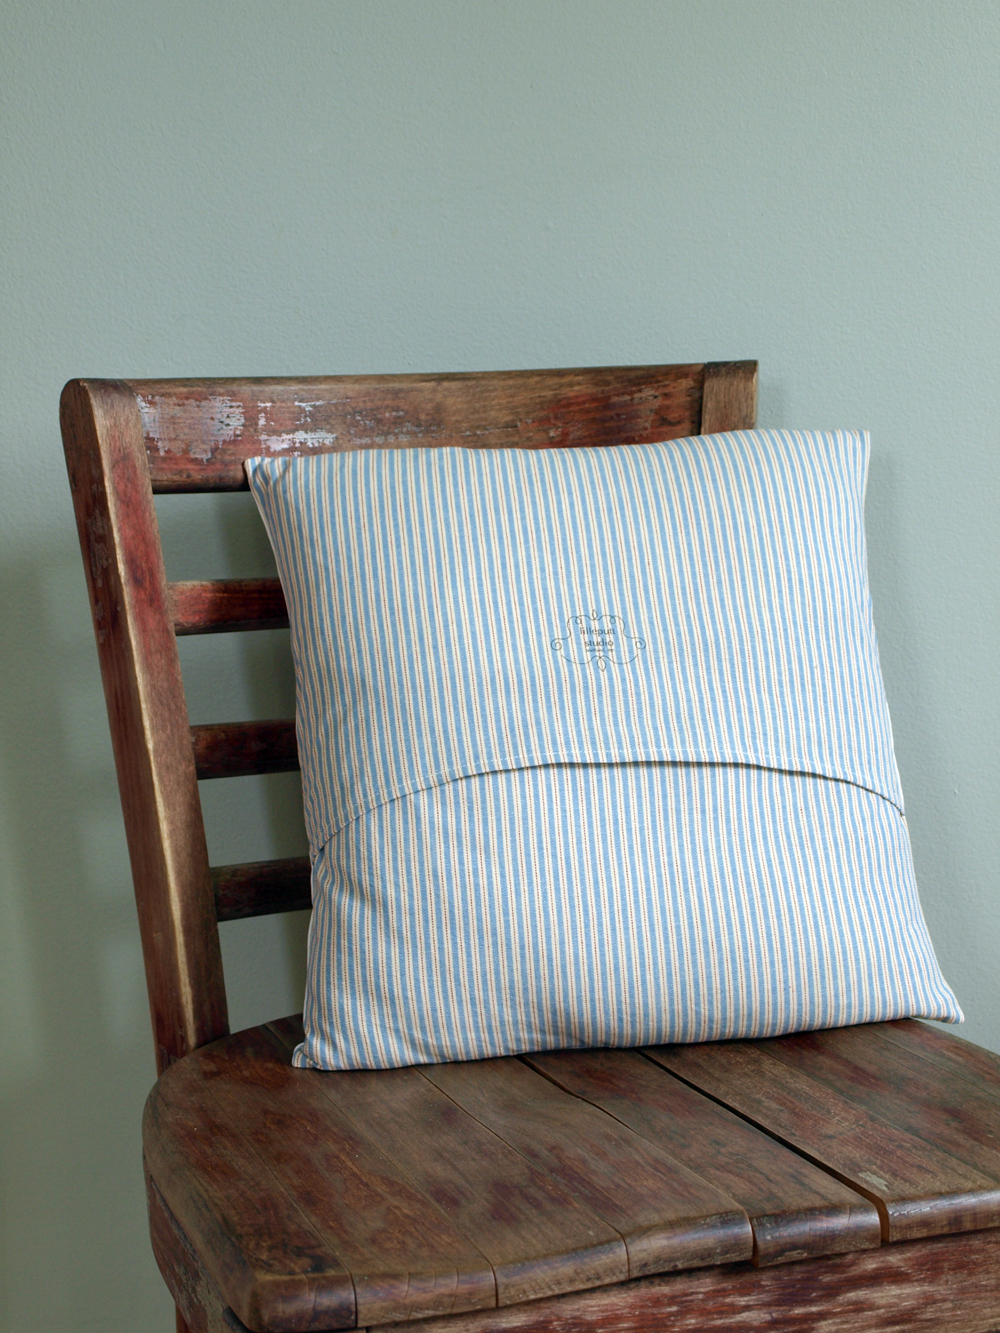 …And the backside. I love the ticking, gives the pillow a really traditional feel.